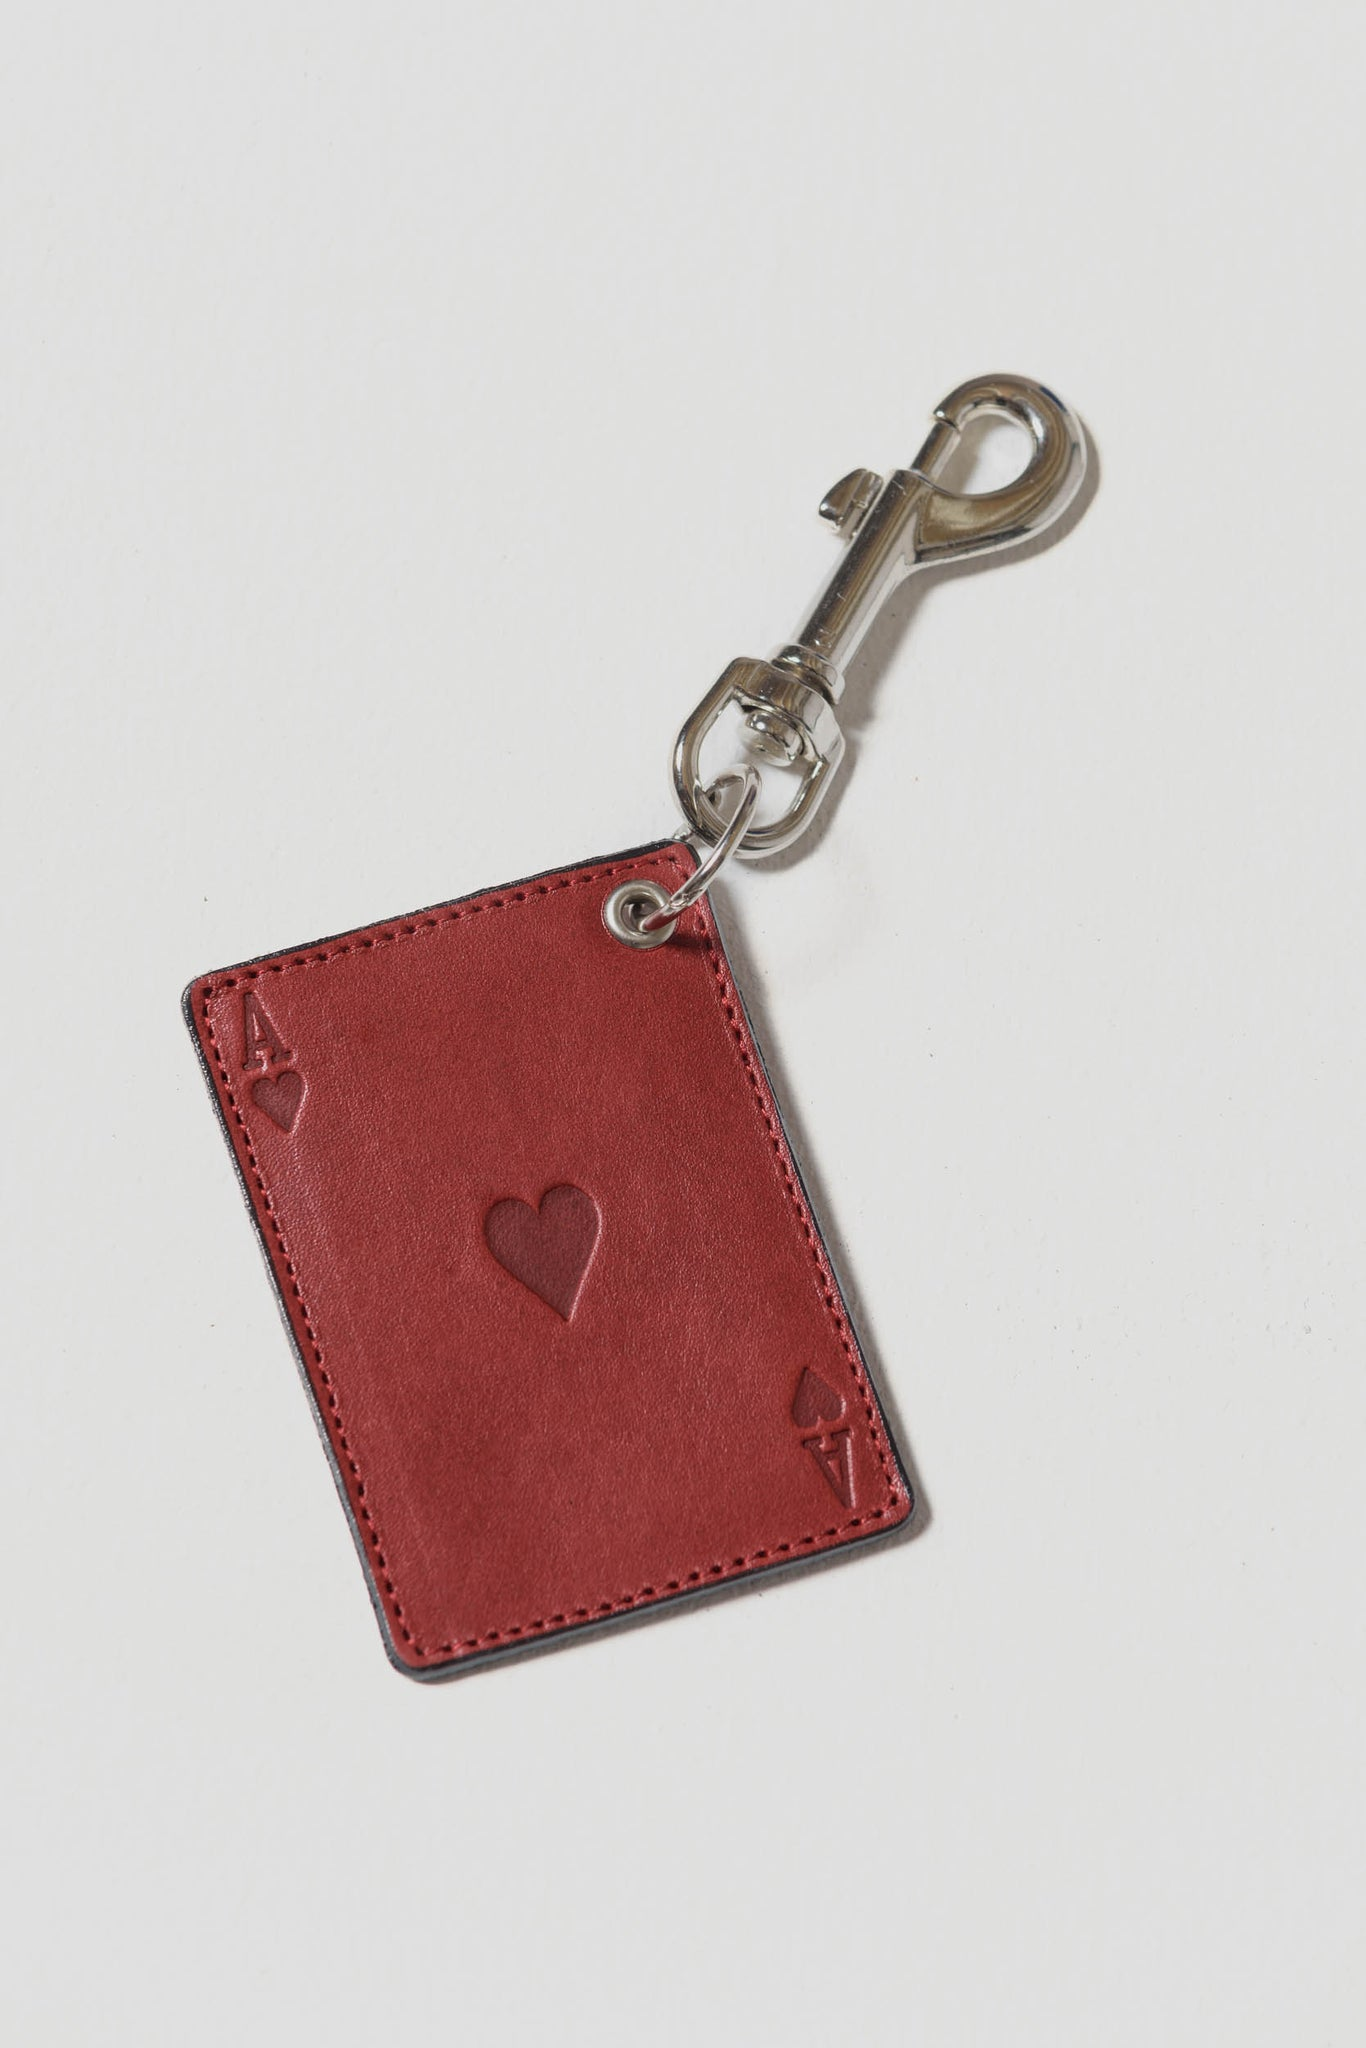 Ace Key Chain Red